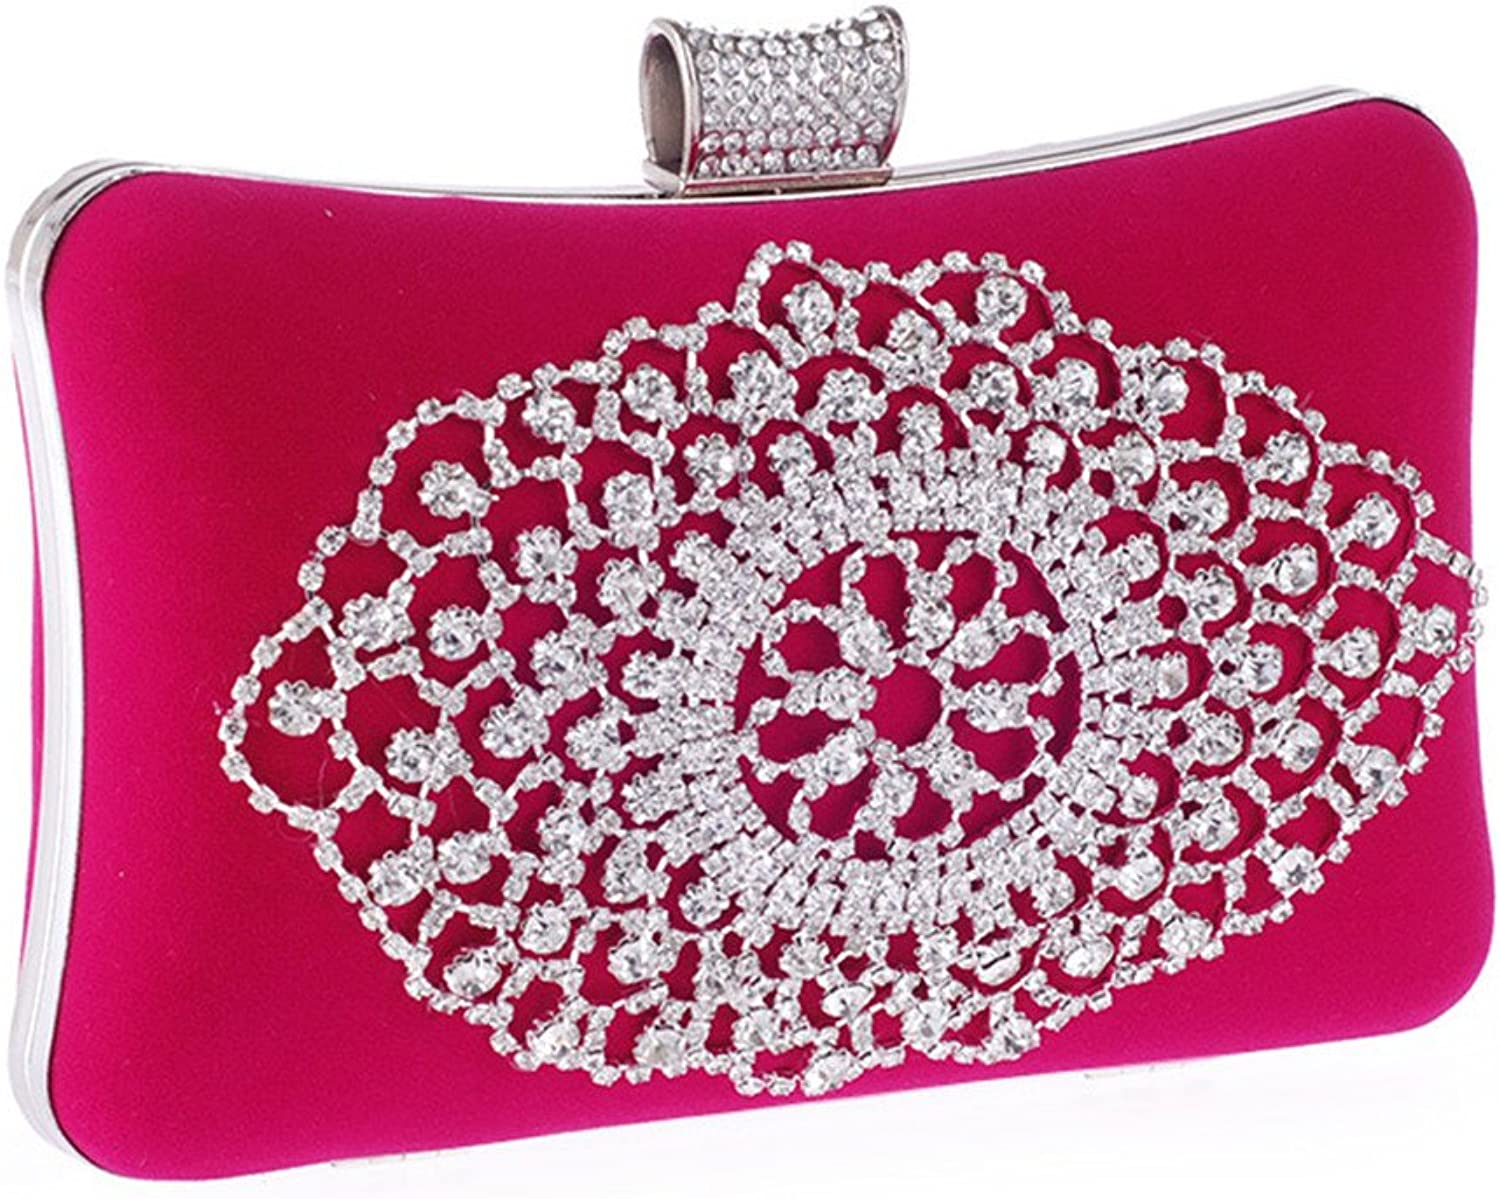 Missfiona Sparkly Crystal Beaded Velvet Evening Prom Clutch Hardbox for Wedding Bridal Formal Occasion